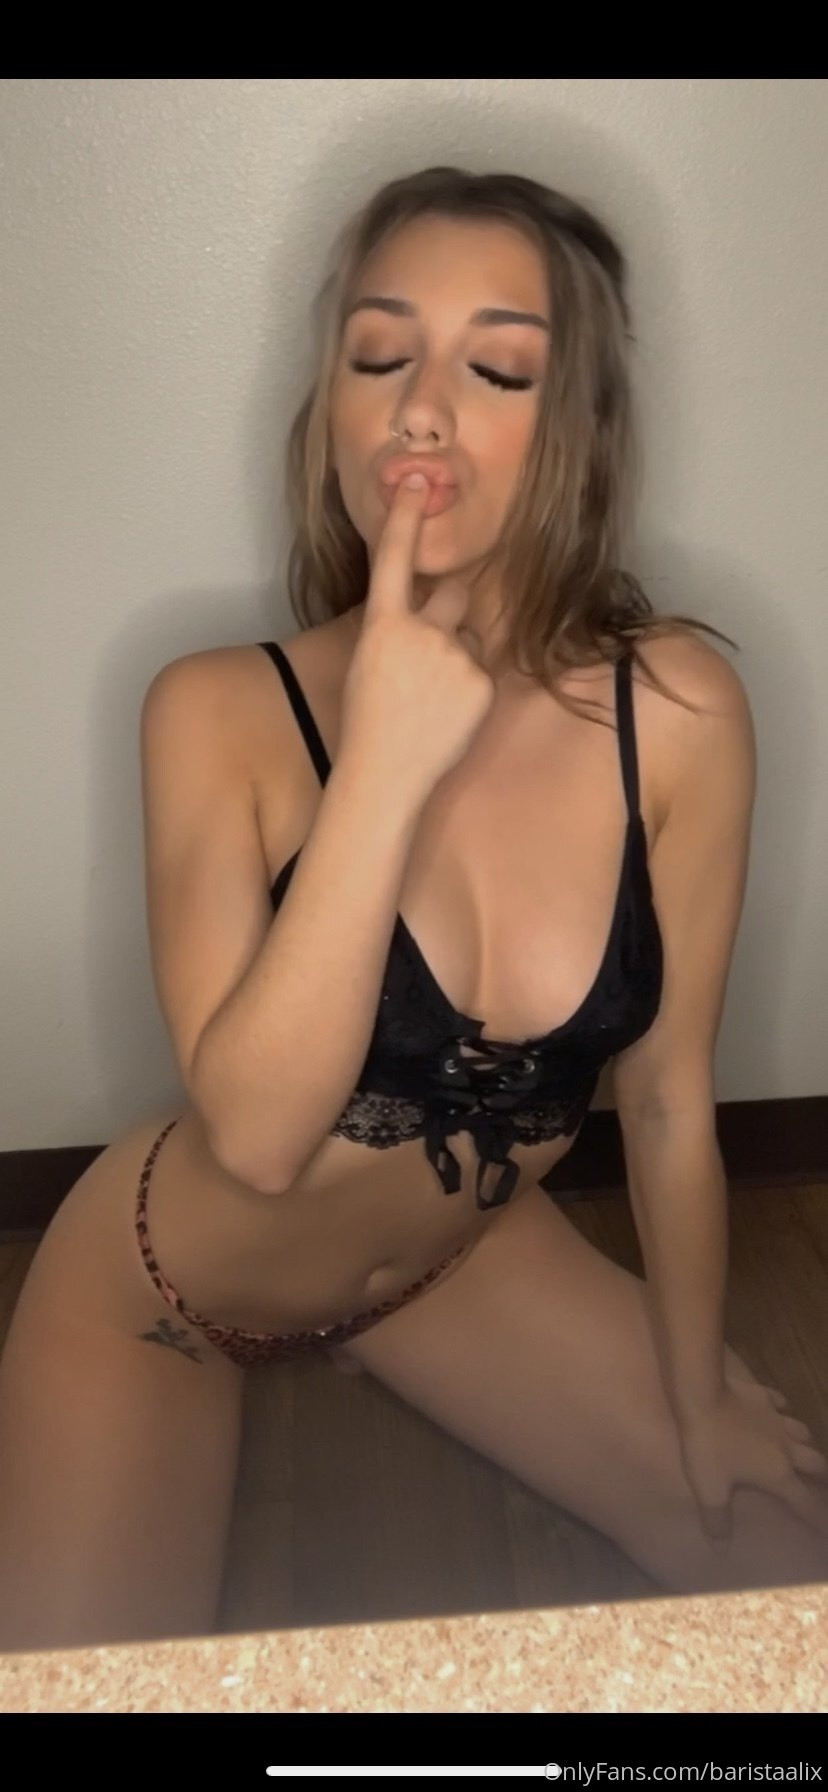 baristaalix Onlyfans Leaked Nude Photos fappenings.com 109